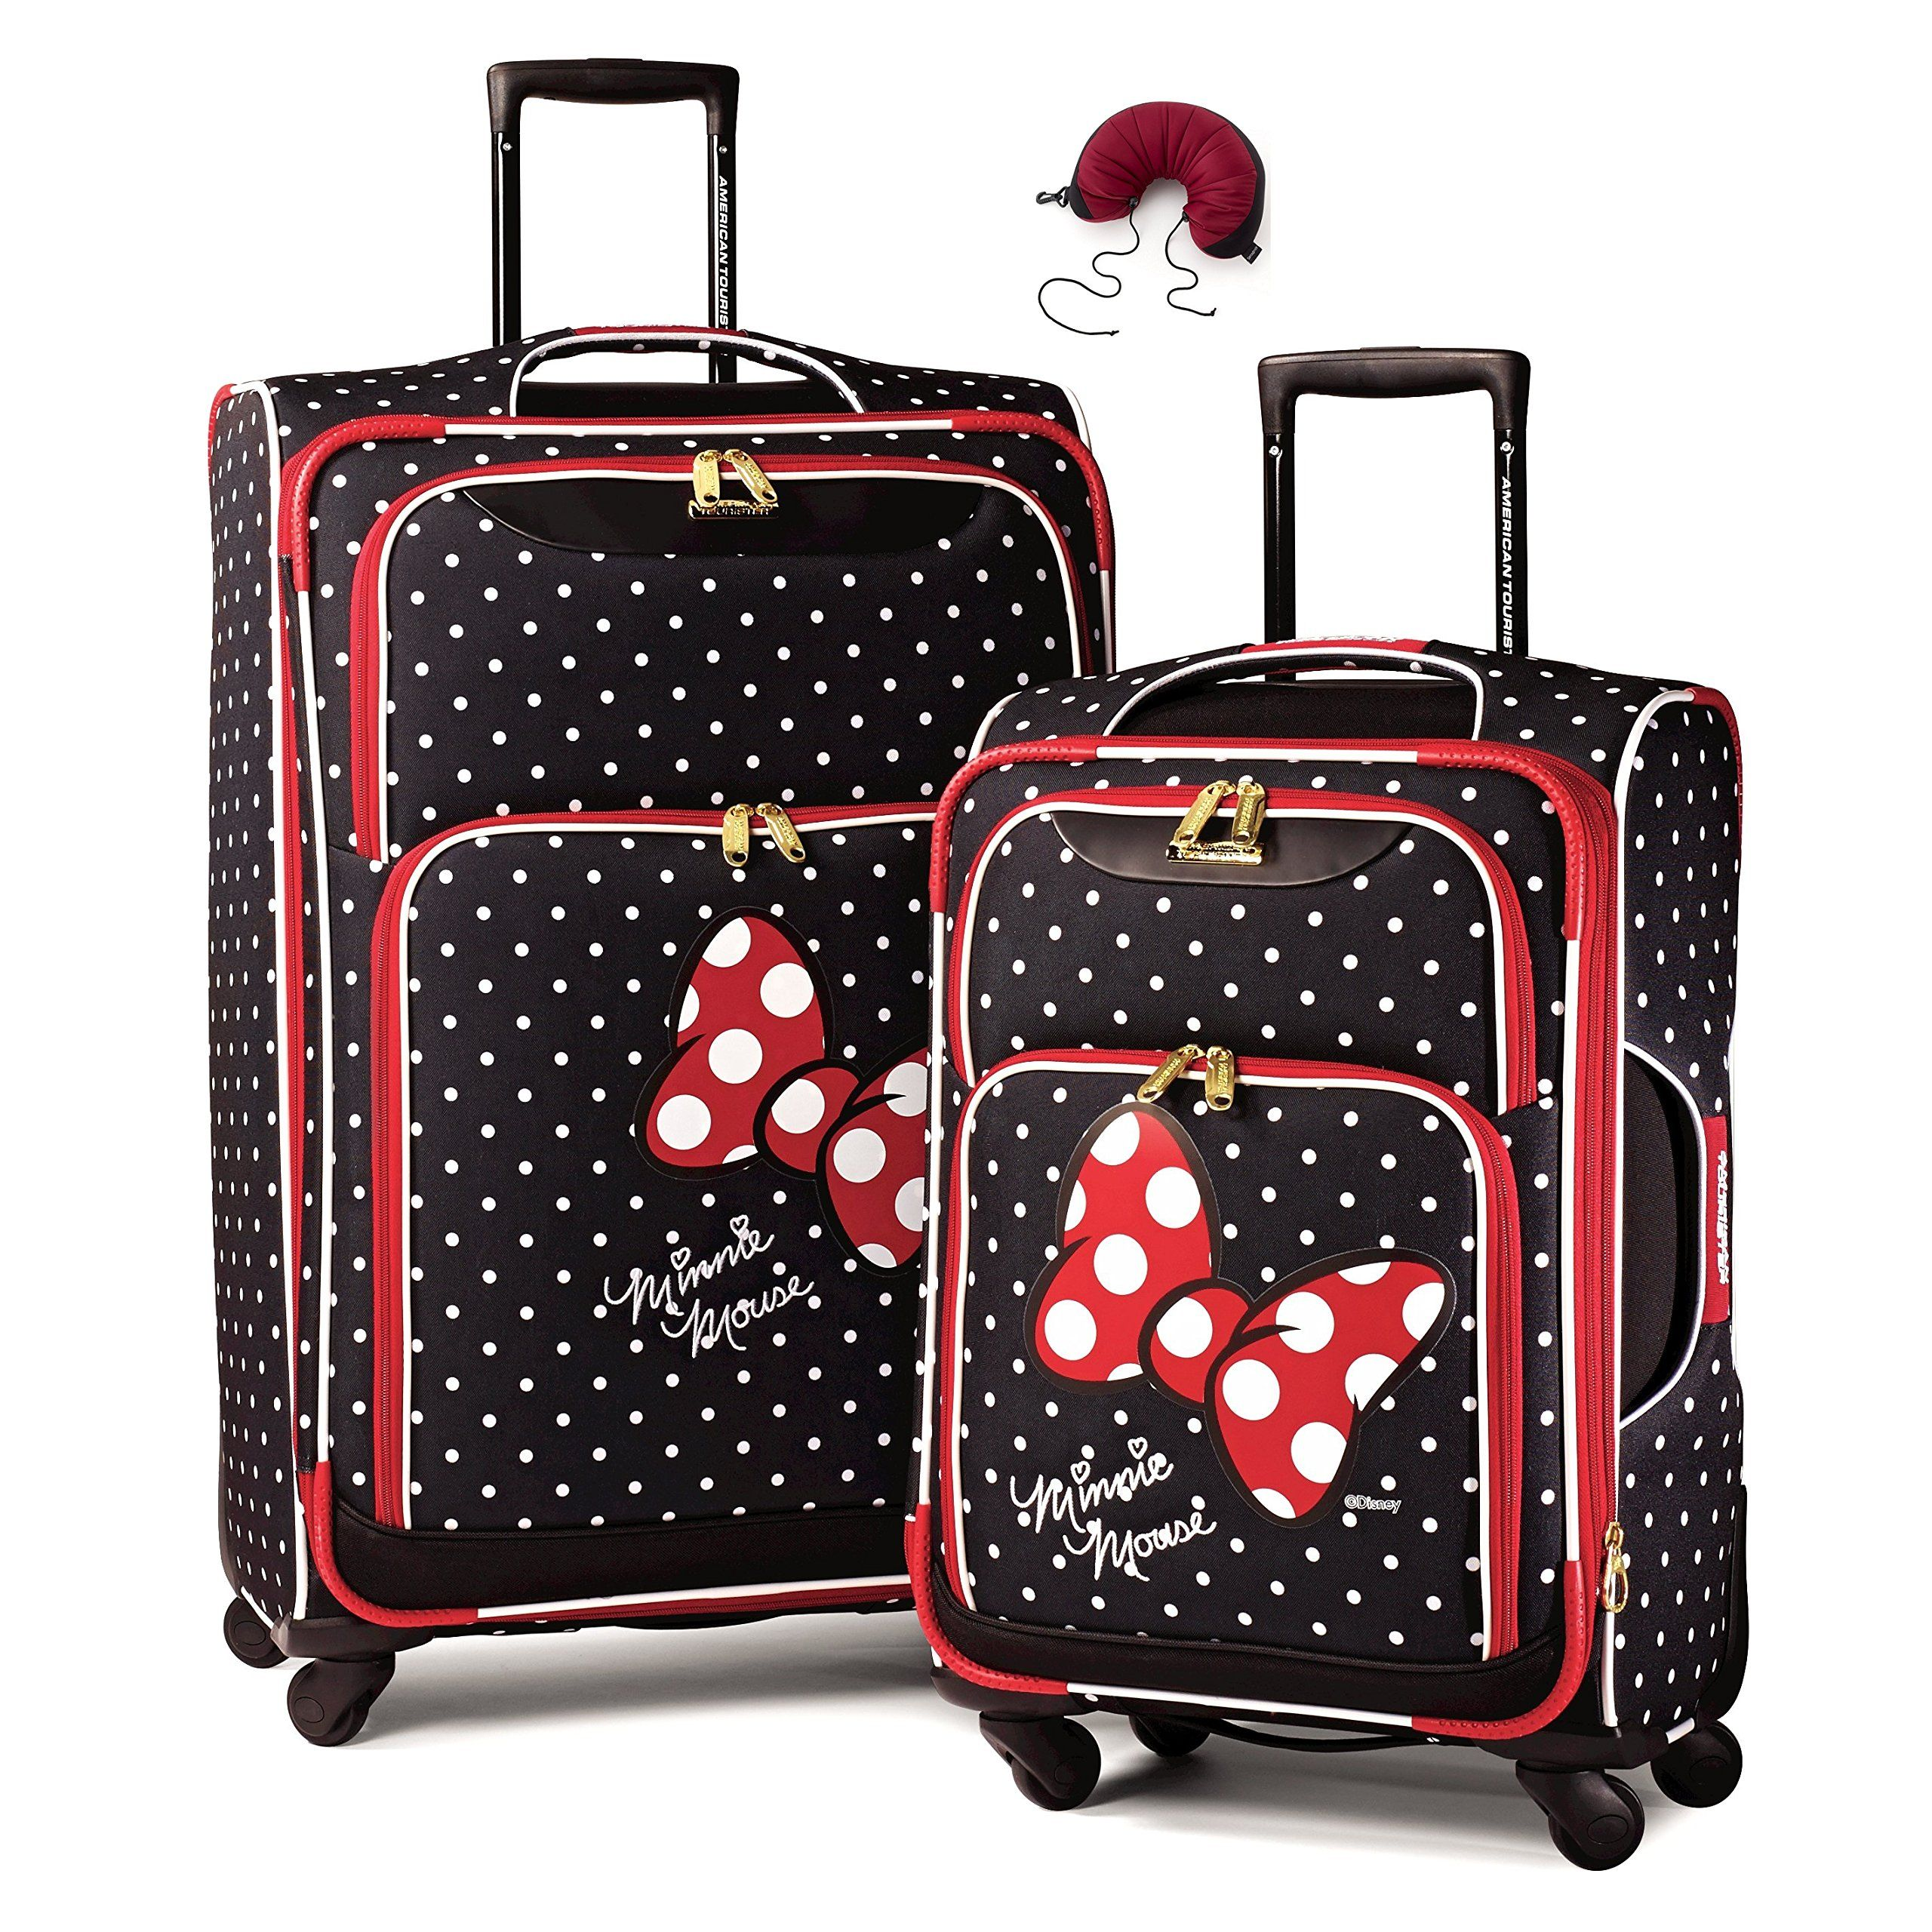 American Tourister Disney Softside Spinner 2 piece Luggage set 21 and 28  and Travel Pillow (One Size ece0e2a7607cf